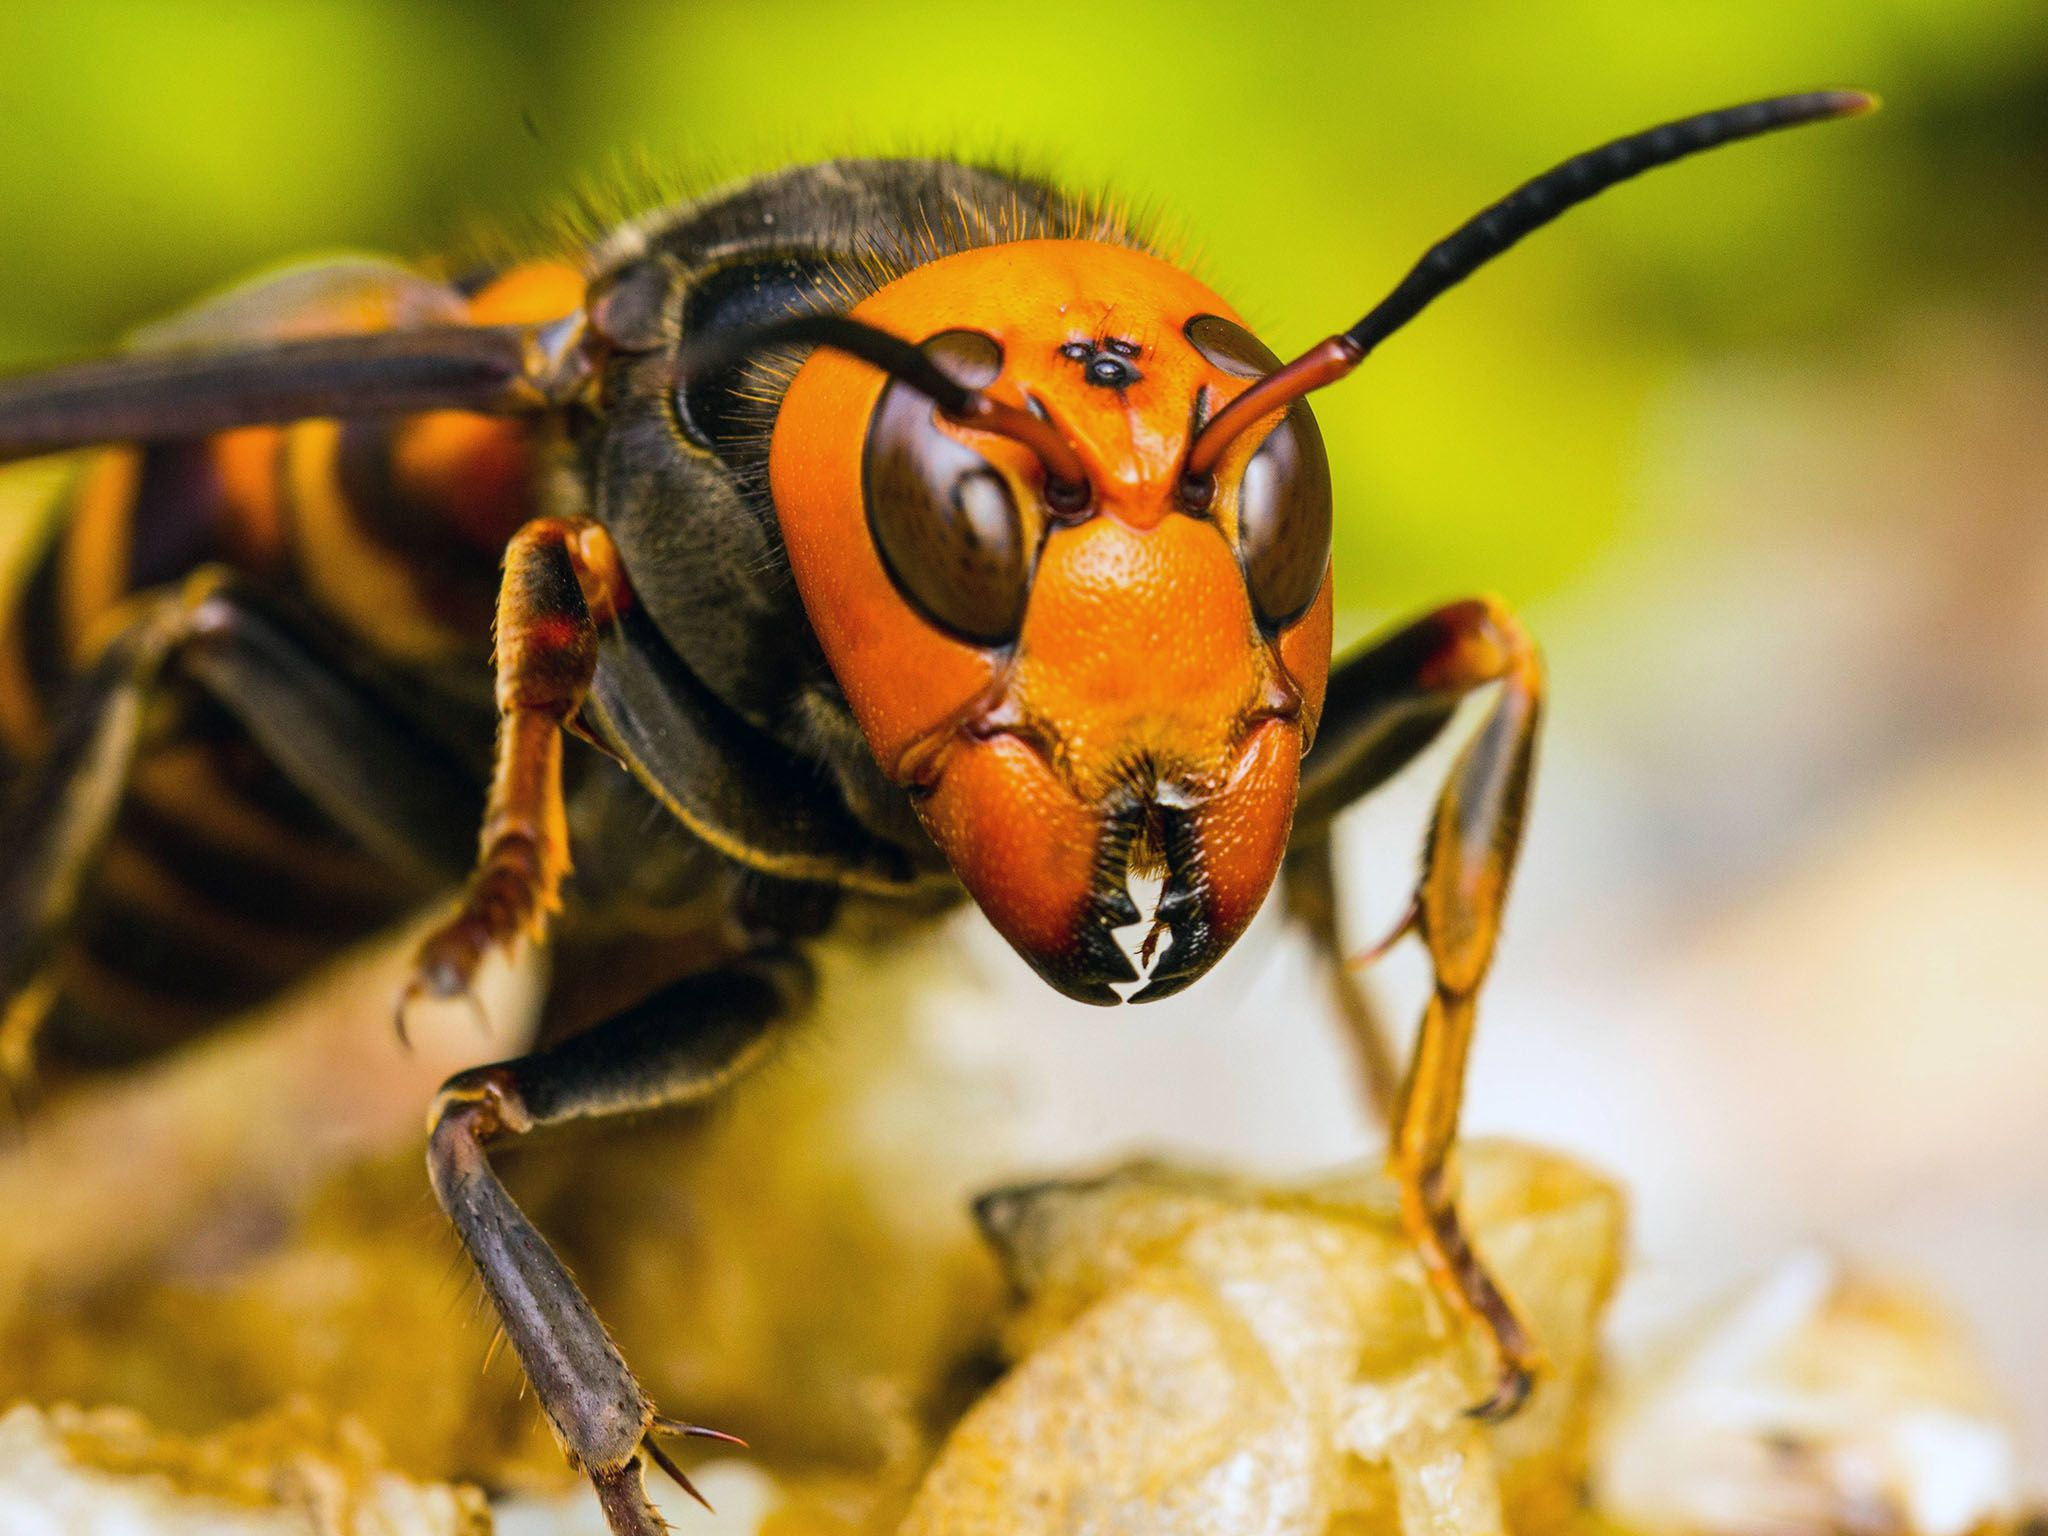 Matsuyama, Japan: Japanese giant hornet's face showing details. This image is from Killer Hornets. [Photo of the day - September 2016]